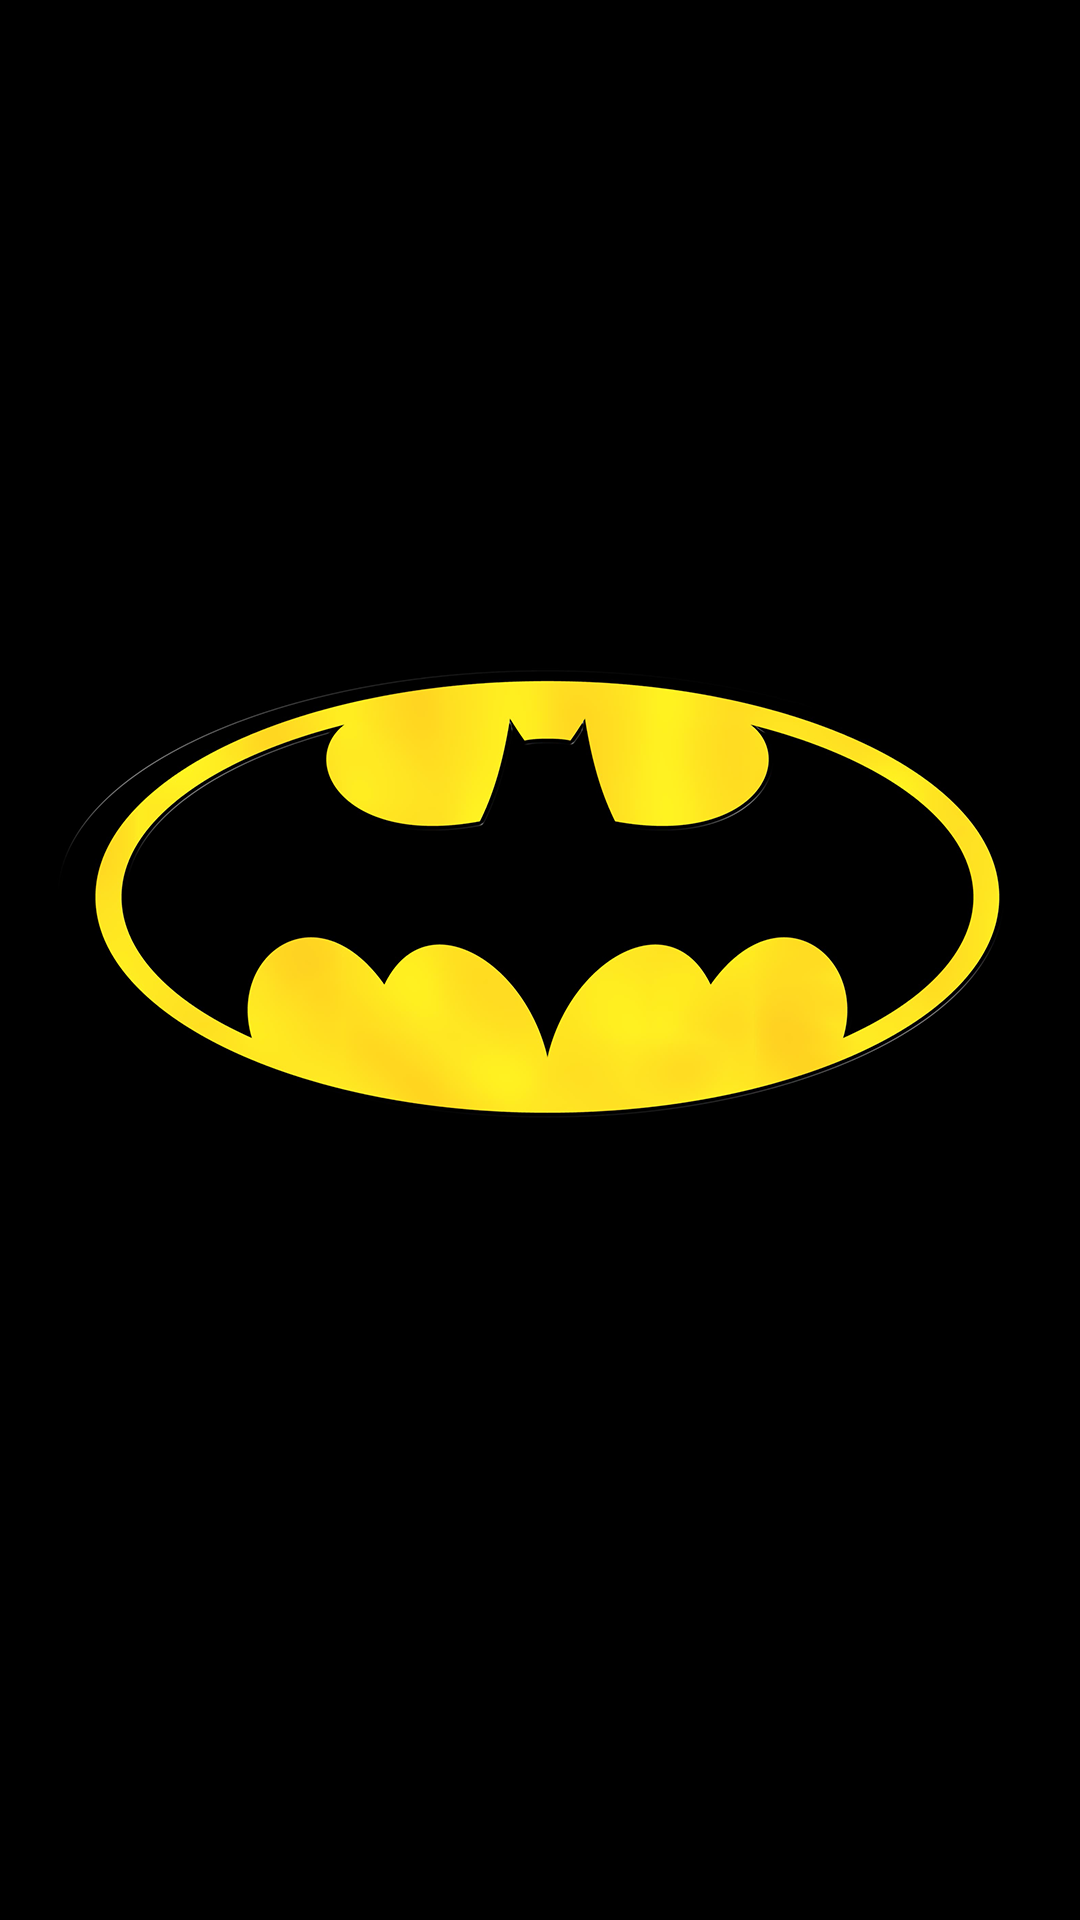 download our hd original batman wallpaper for android phones 0196